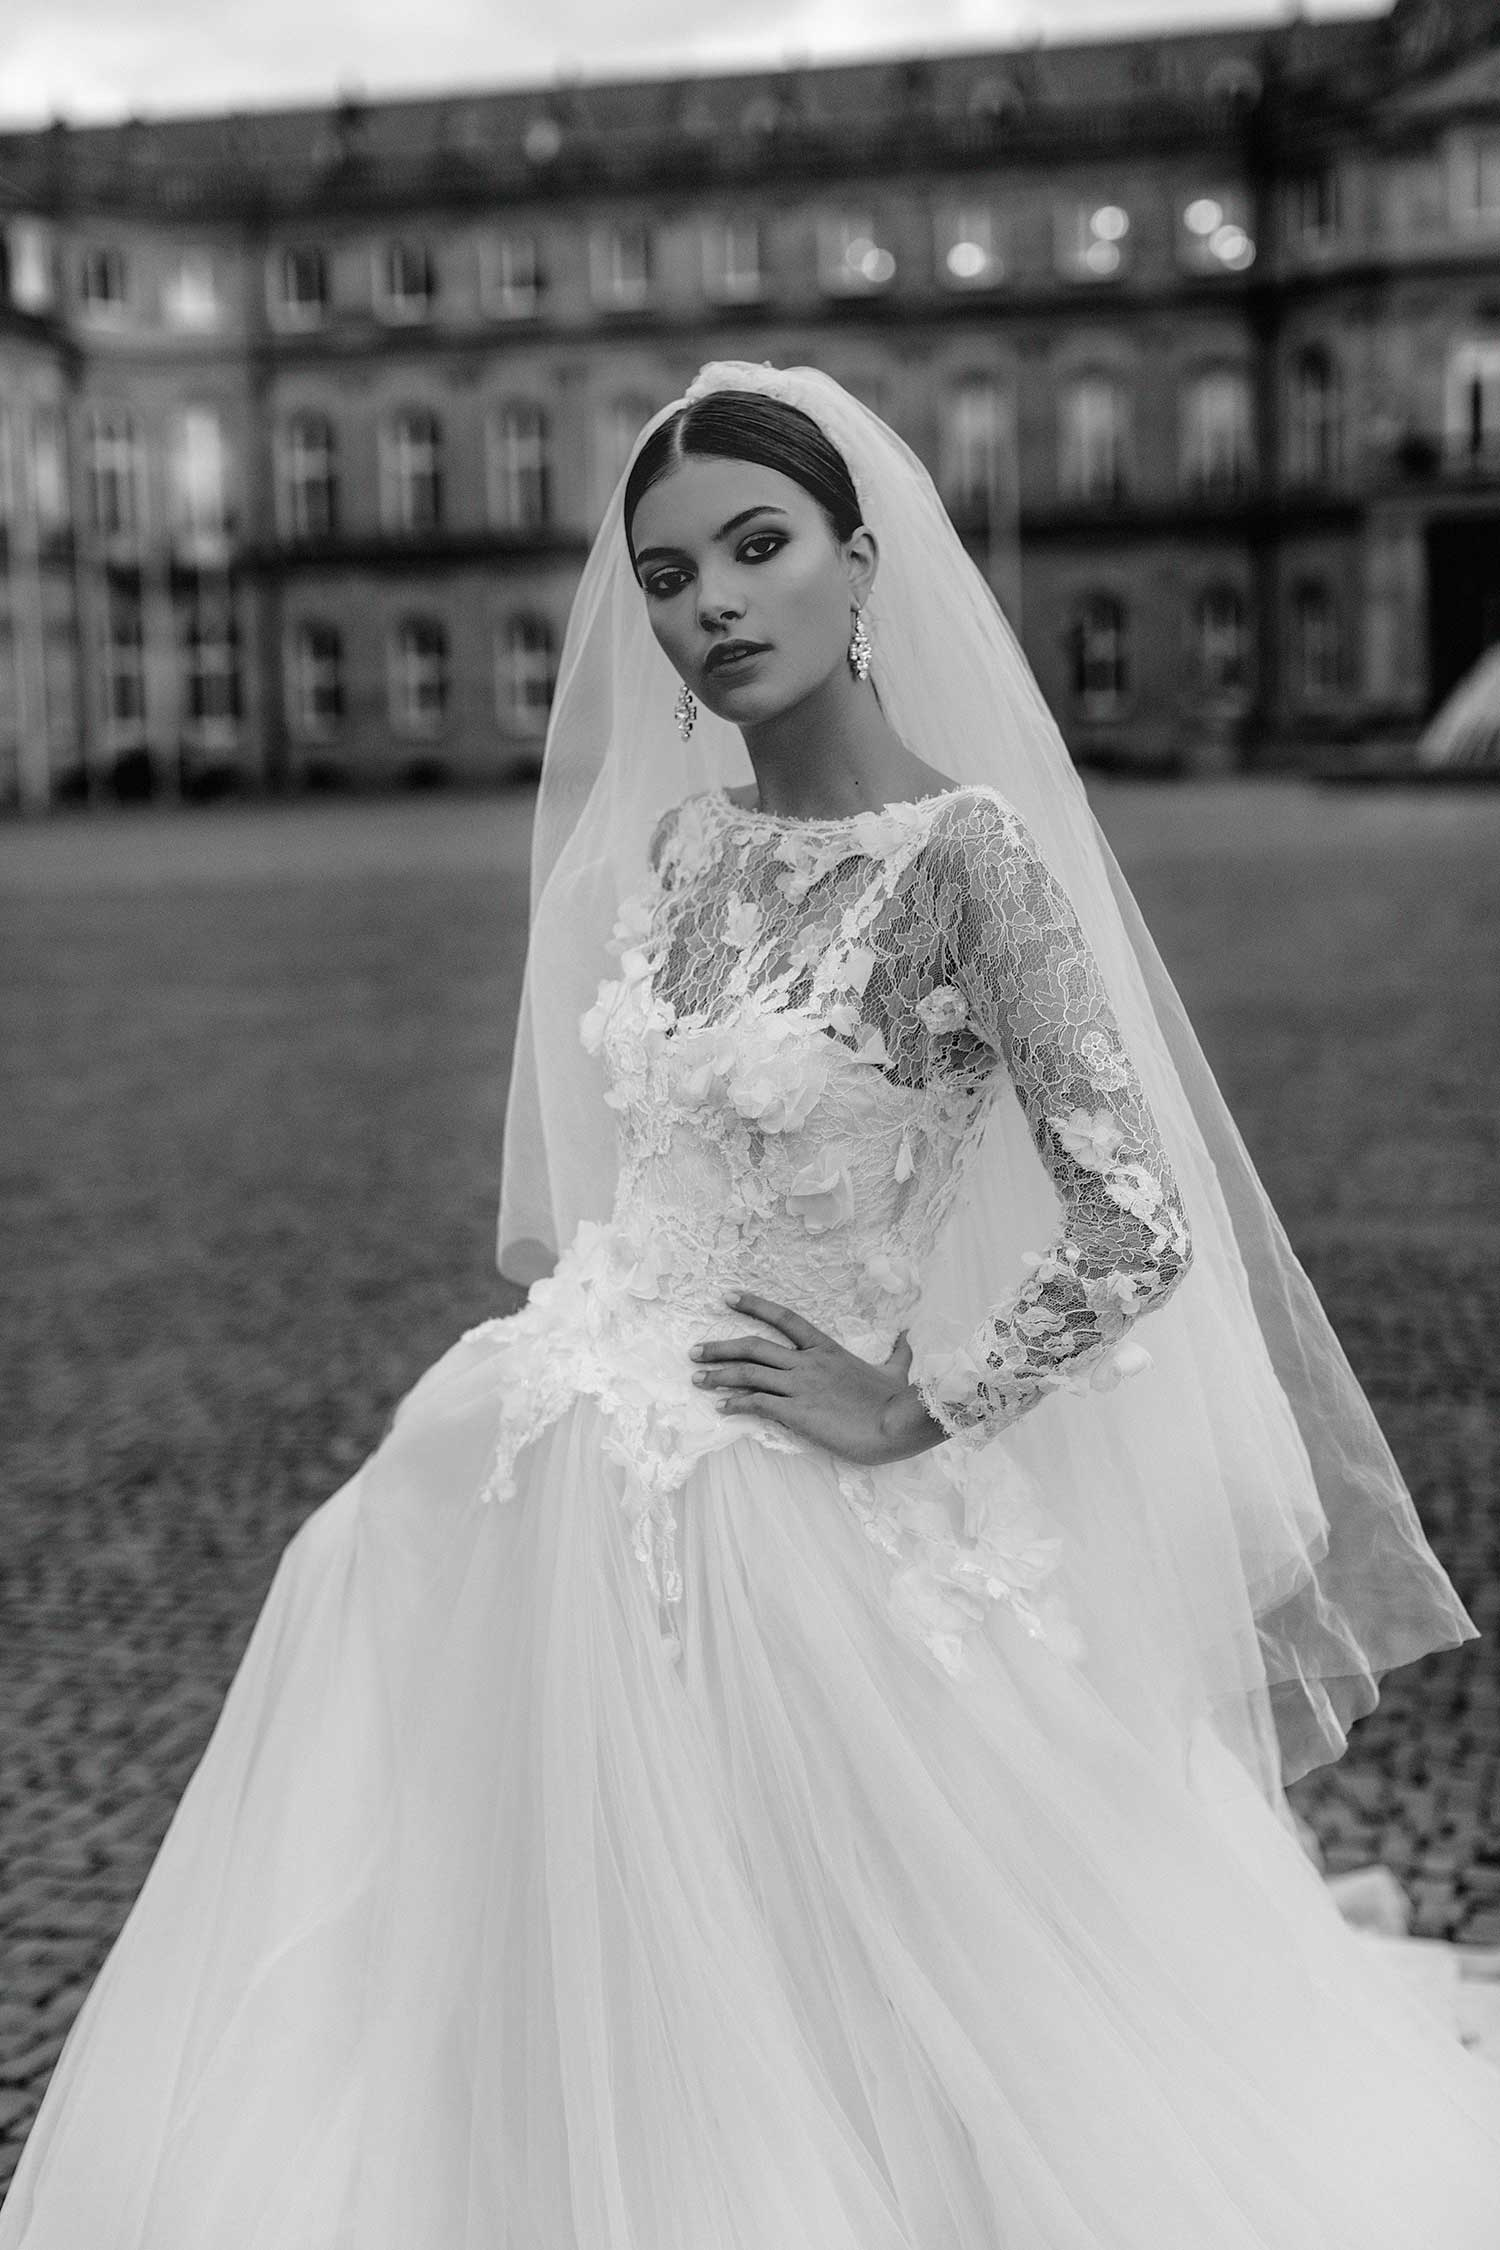 Bridal editorial photo in Germany